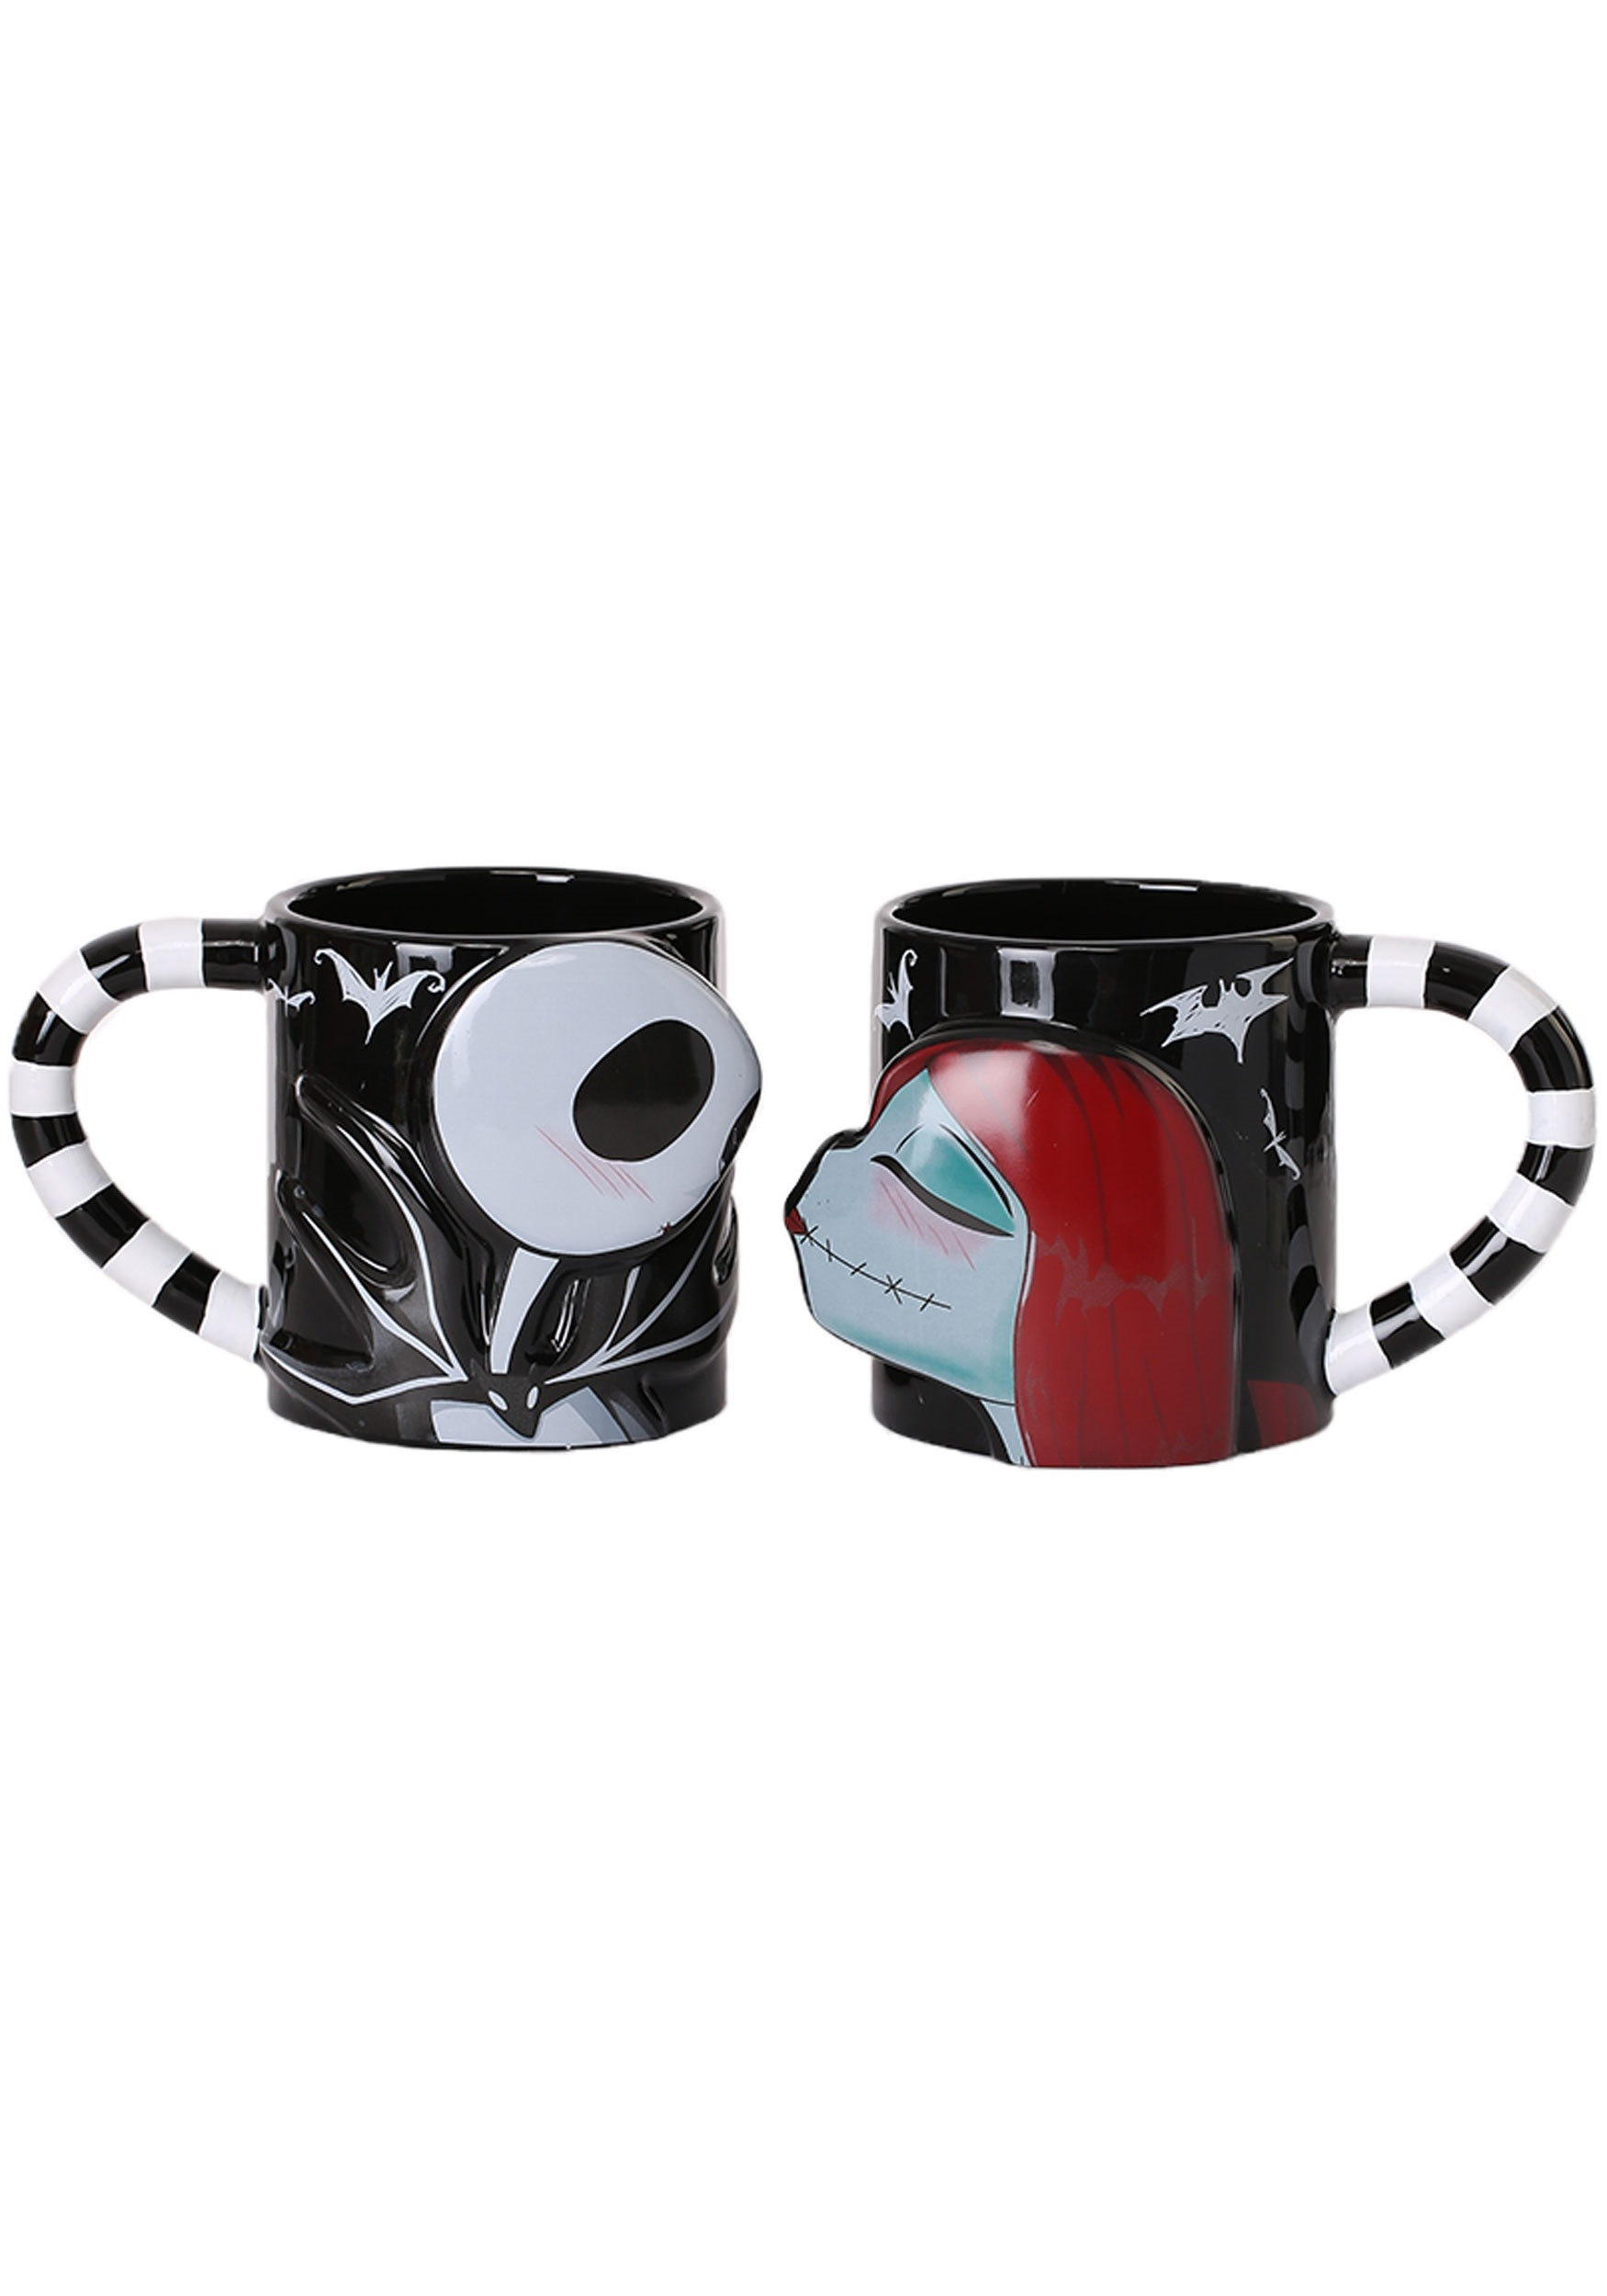 Jack and Sally Nightmare Before Christmas 2 piece Mug Set